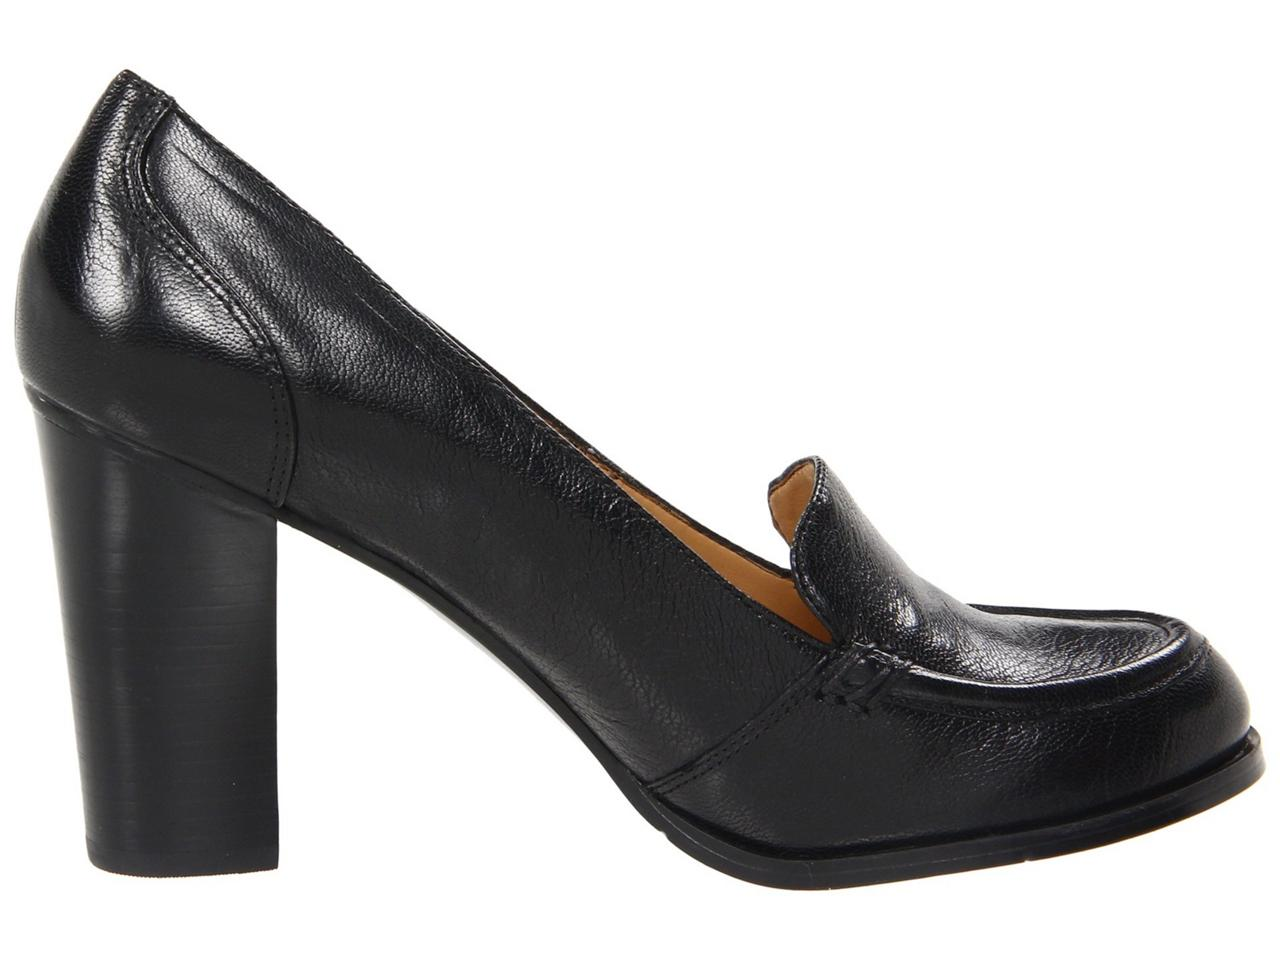 Nine west Bronnie3 Court Shoes in Black   Lyst